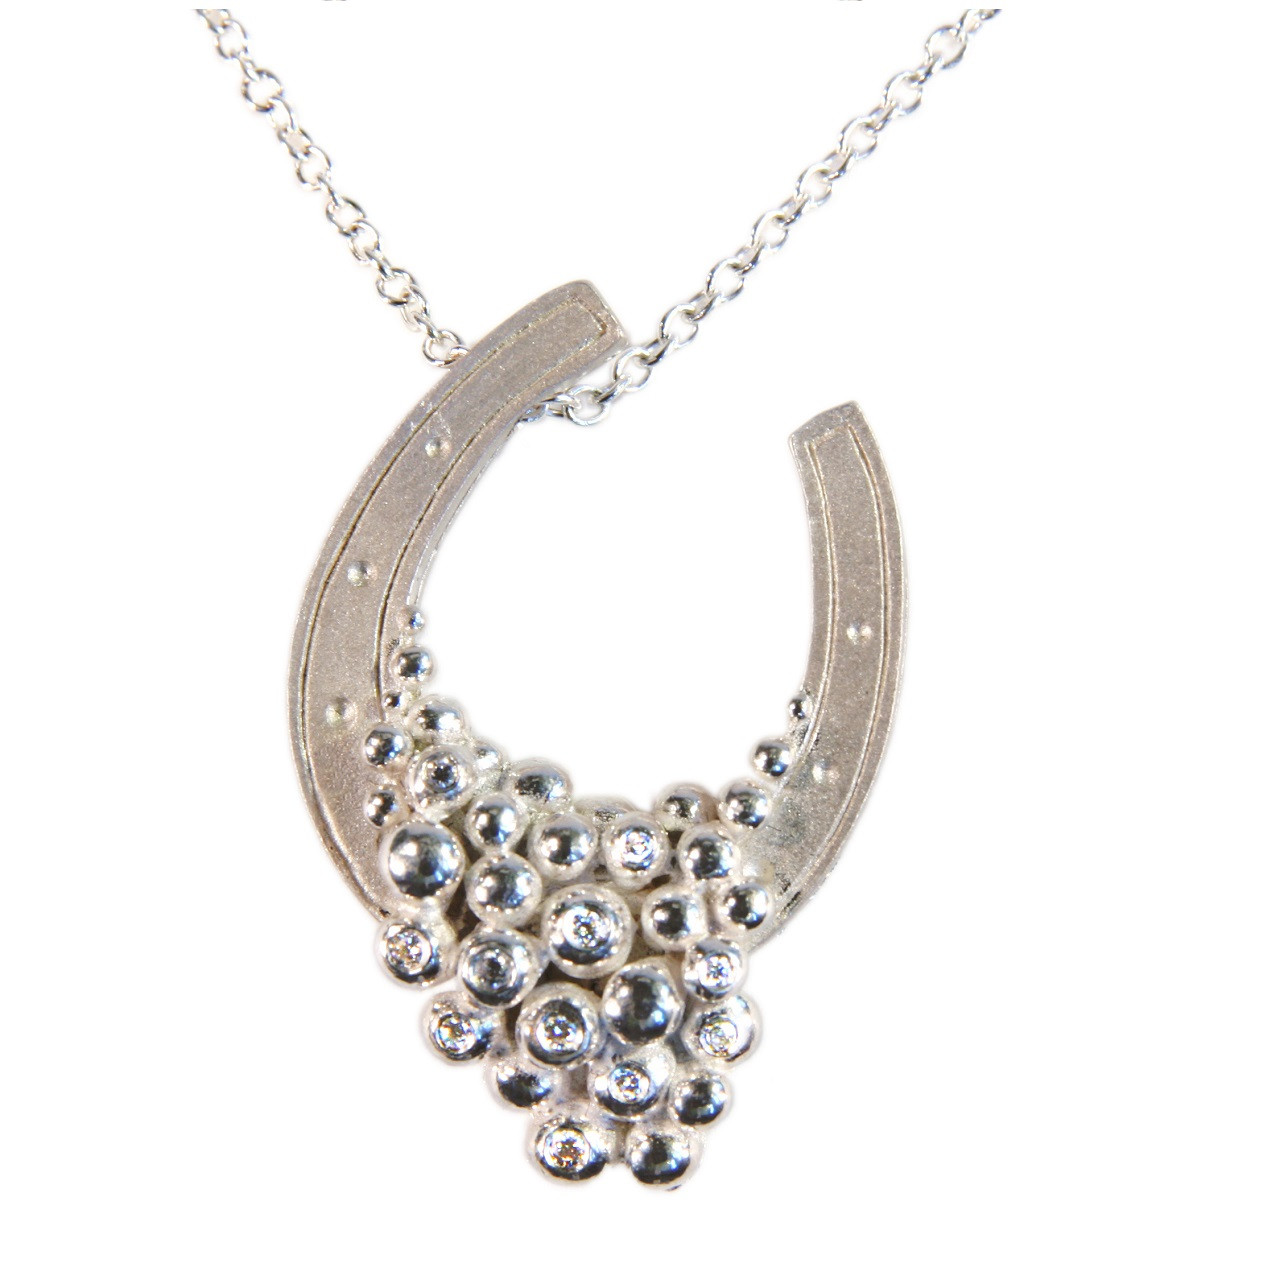 Lucky You Horseshoe necklace in silver - half filled with diamonds.  More can be added later if you wish. The Equestrian jewelry collection.